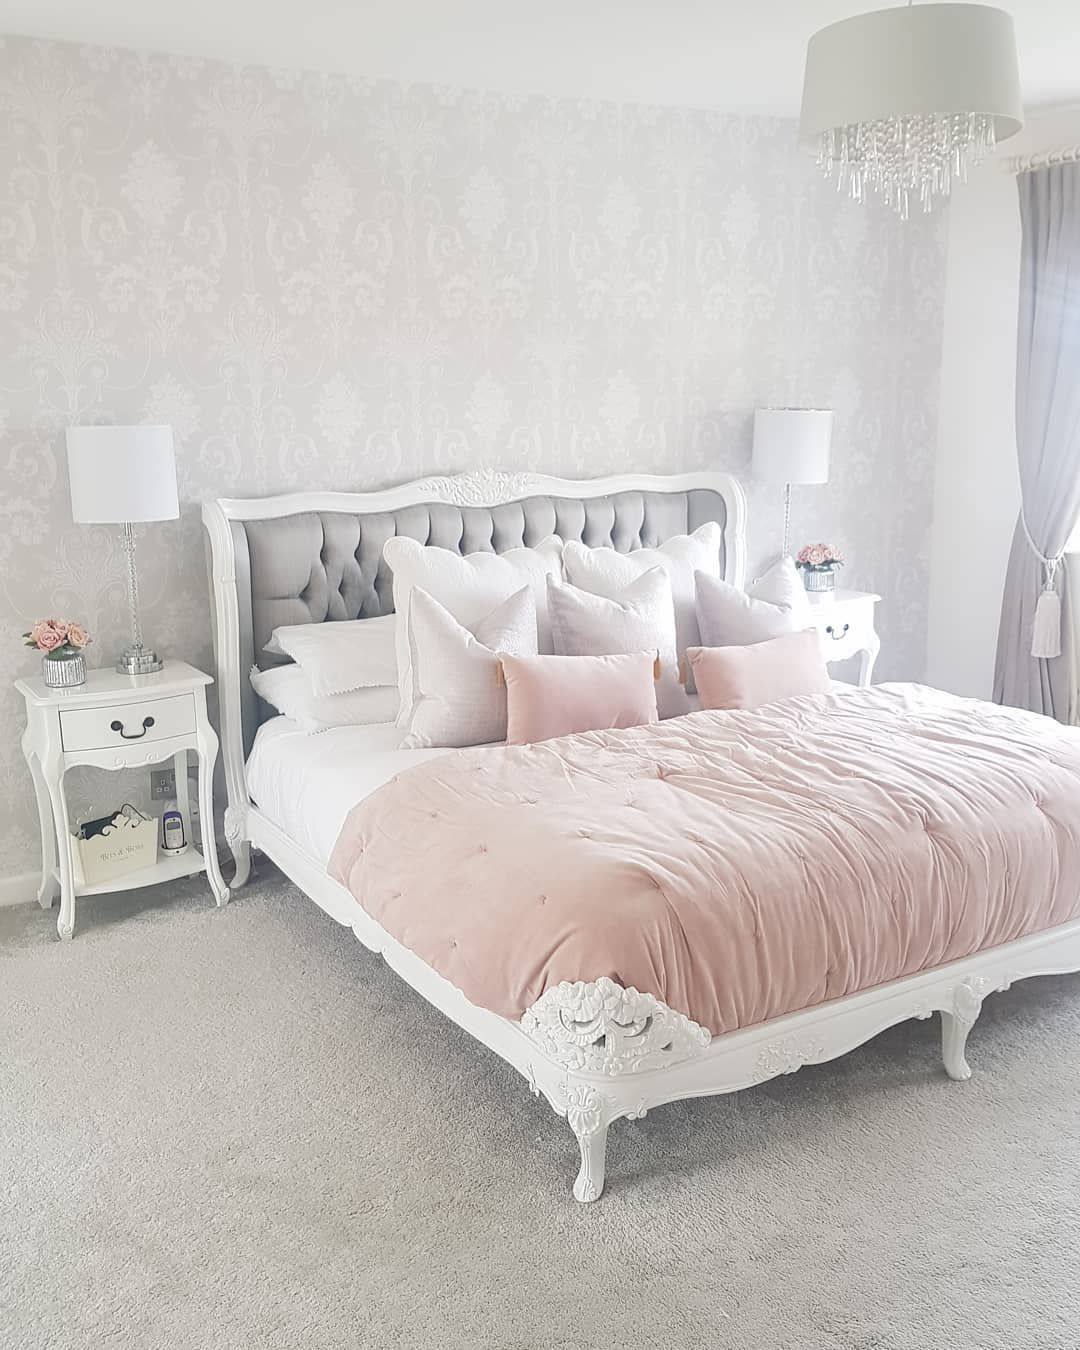 The French Bedroom Company (@frenchbedroomcompany) | bedrooms in ...